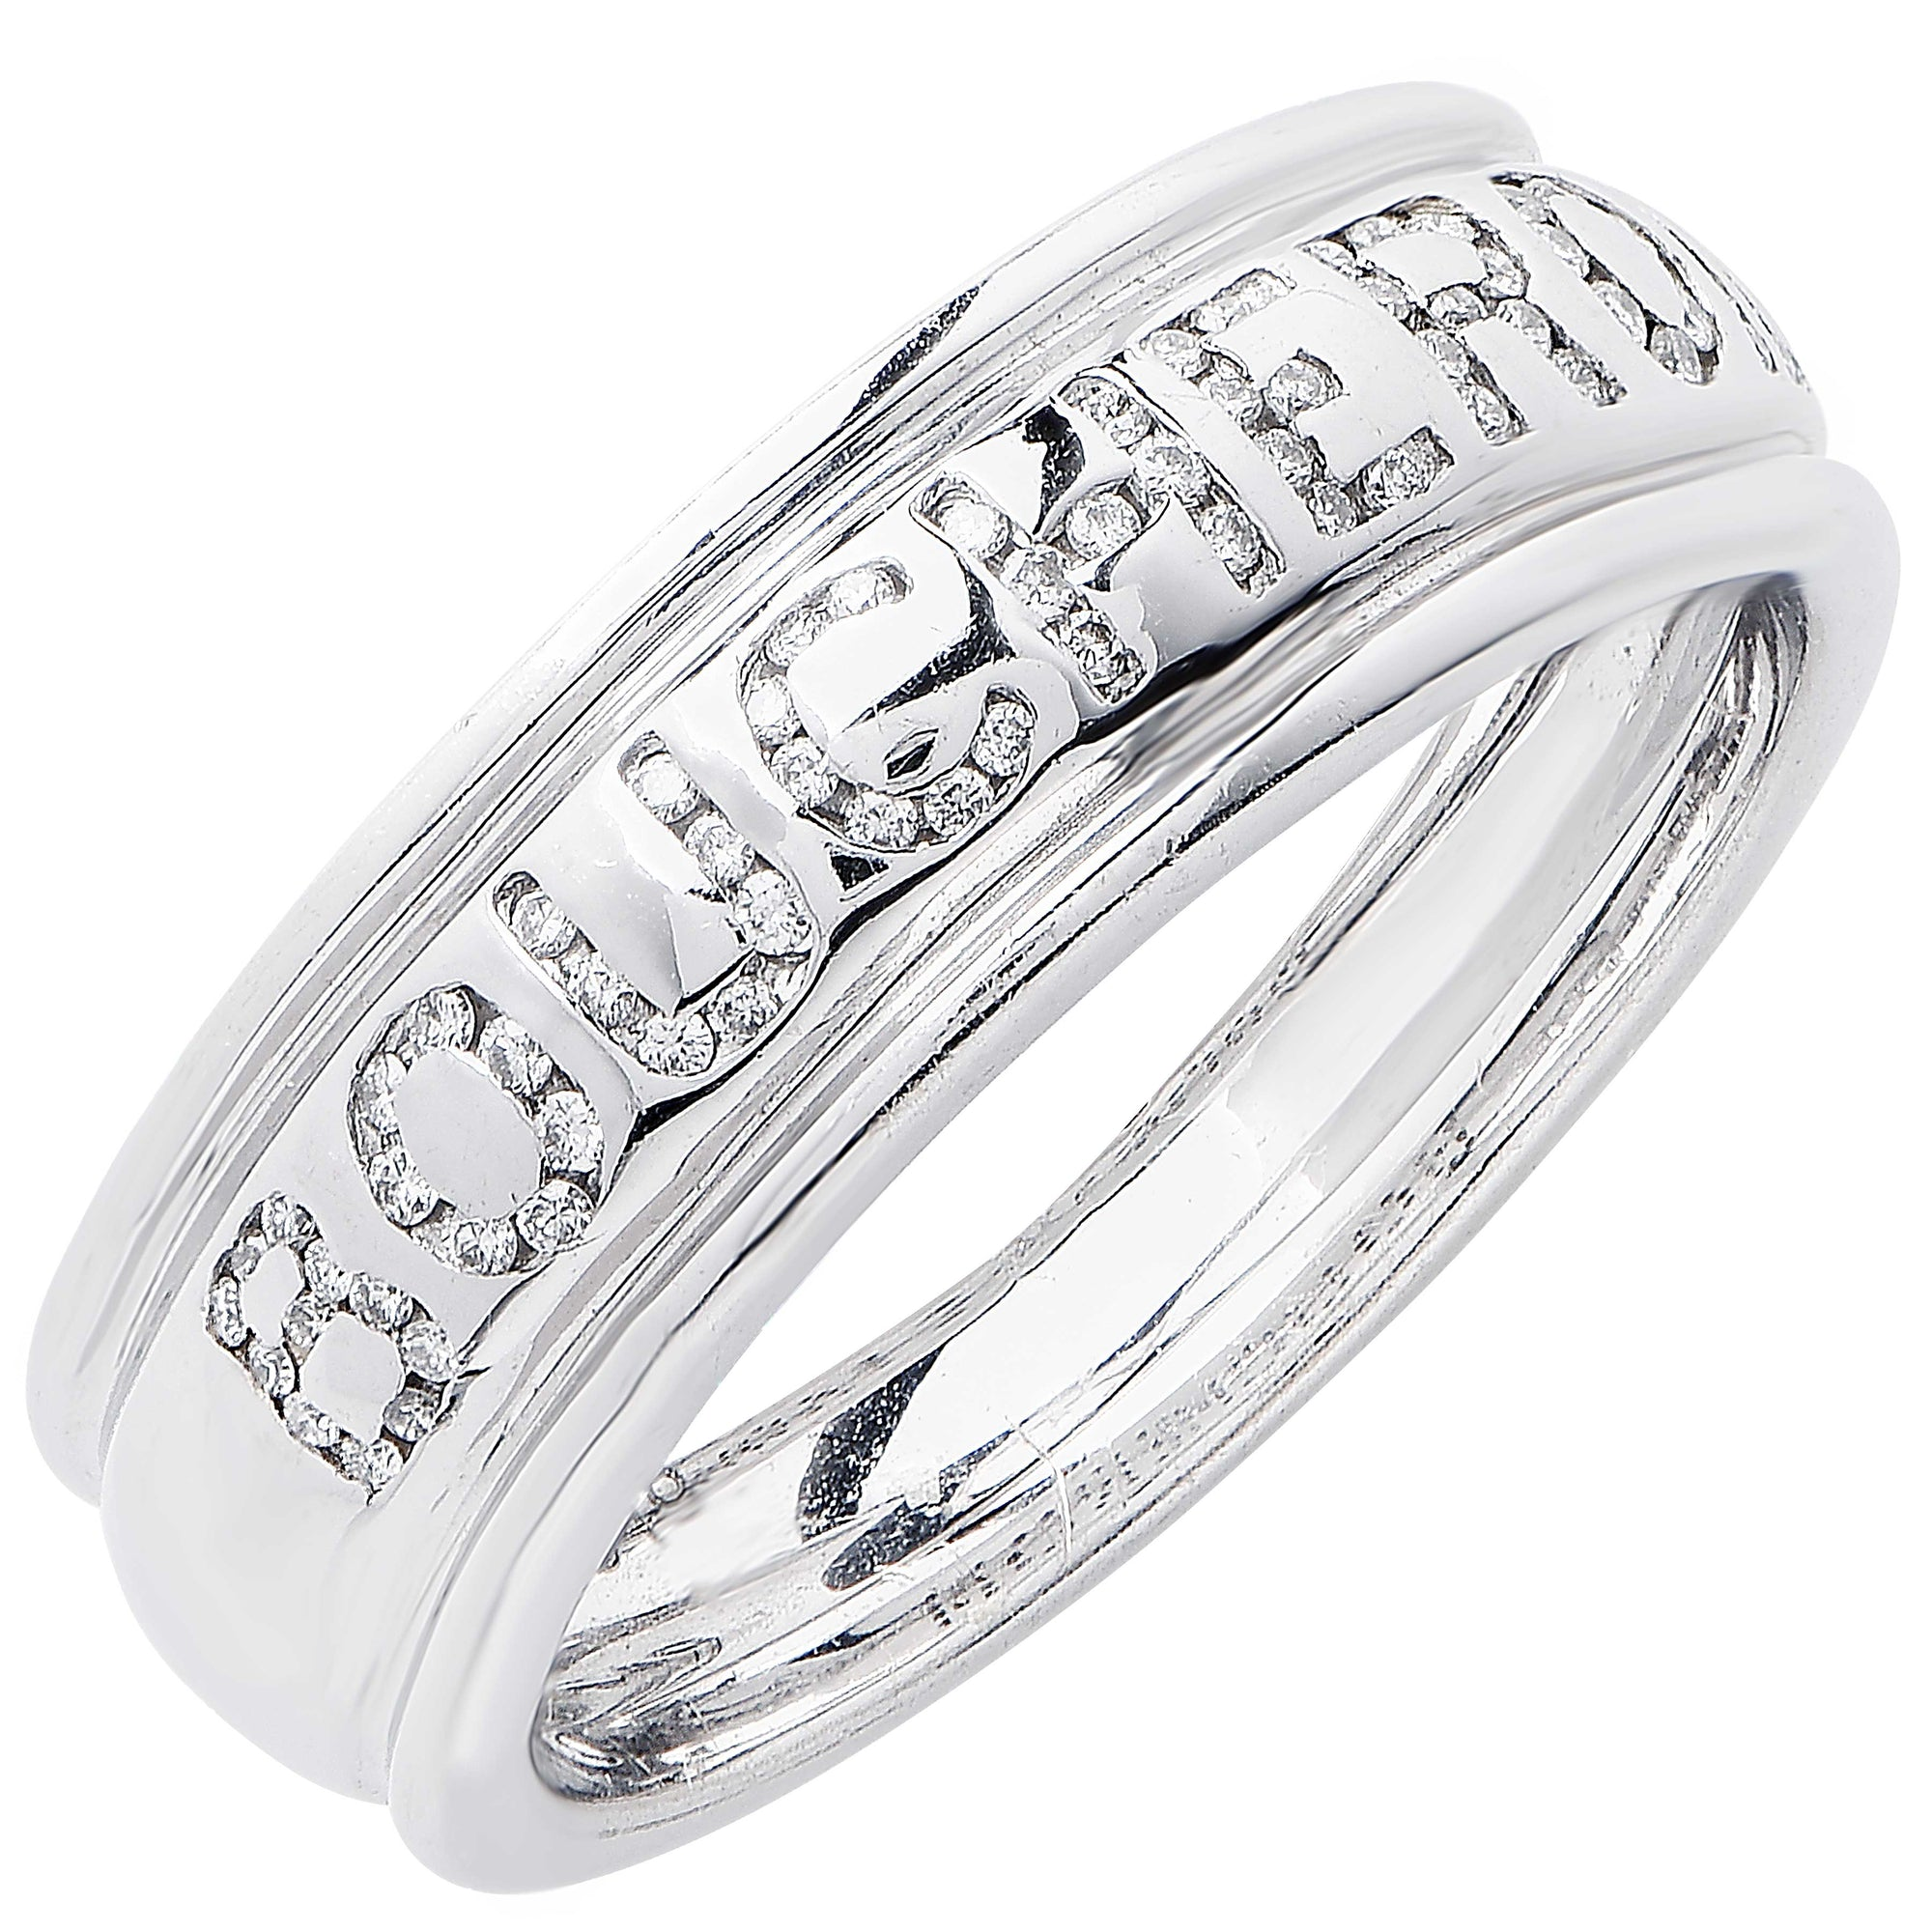 Boucheron Diamond White Gold Wedding Band Ring